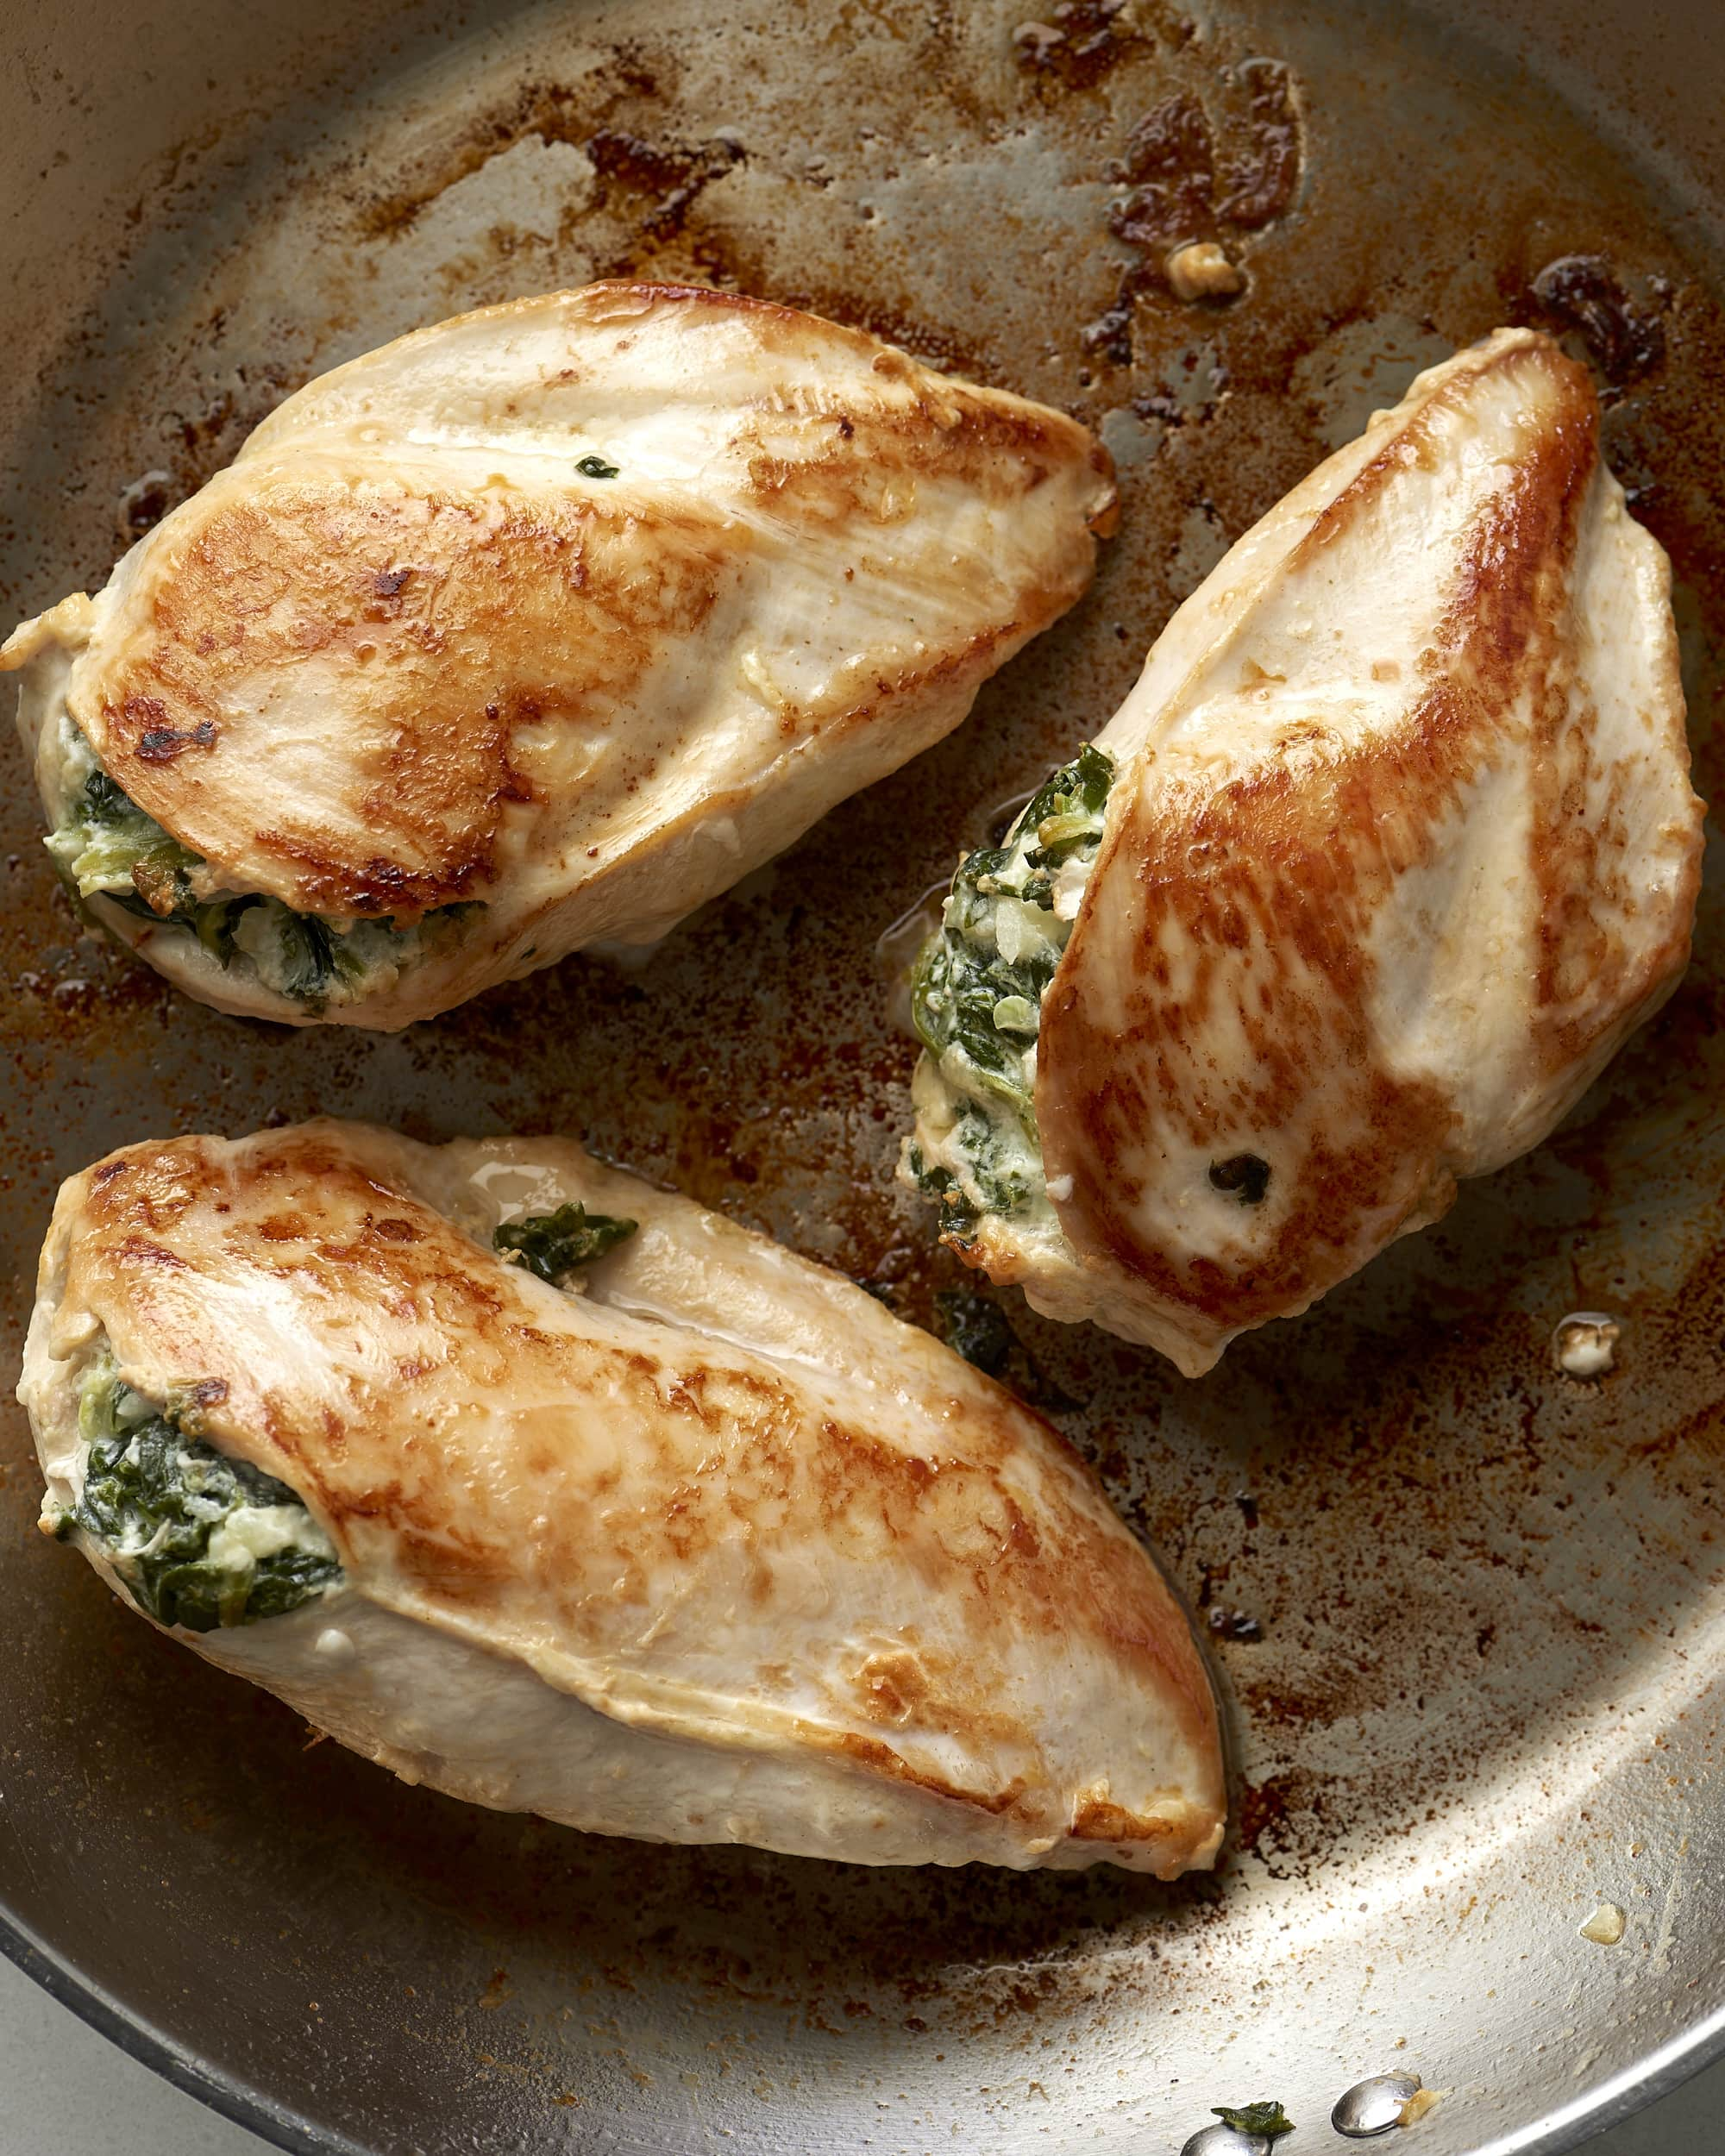 How To Make Stuffed Chicken Breast With Spinach & Cheese